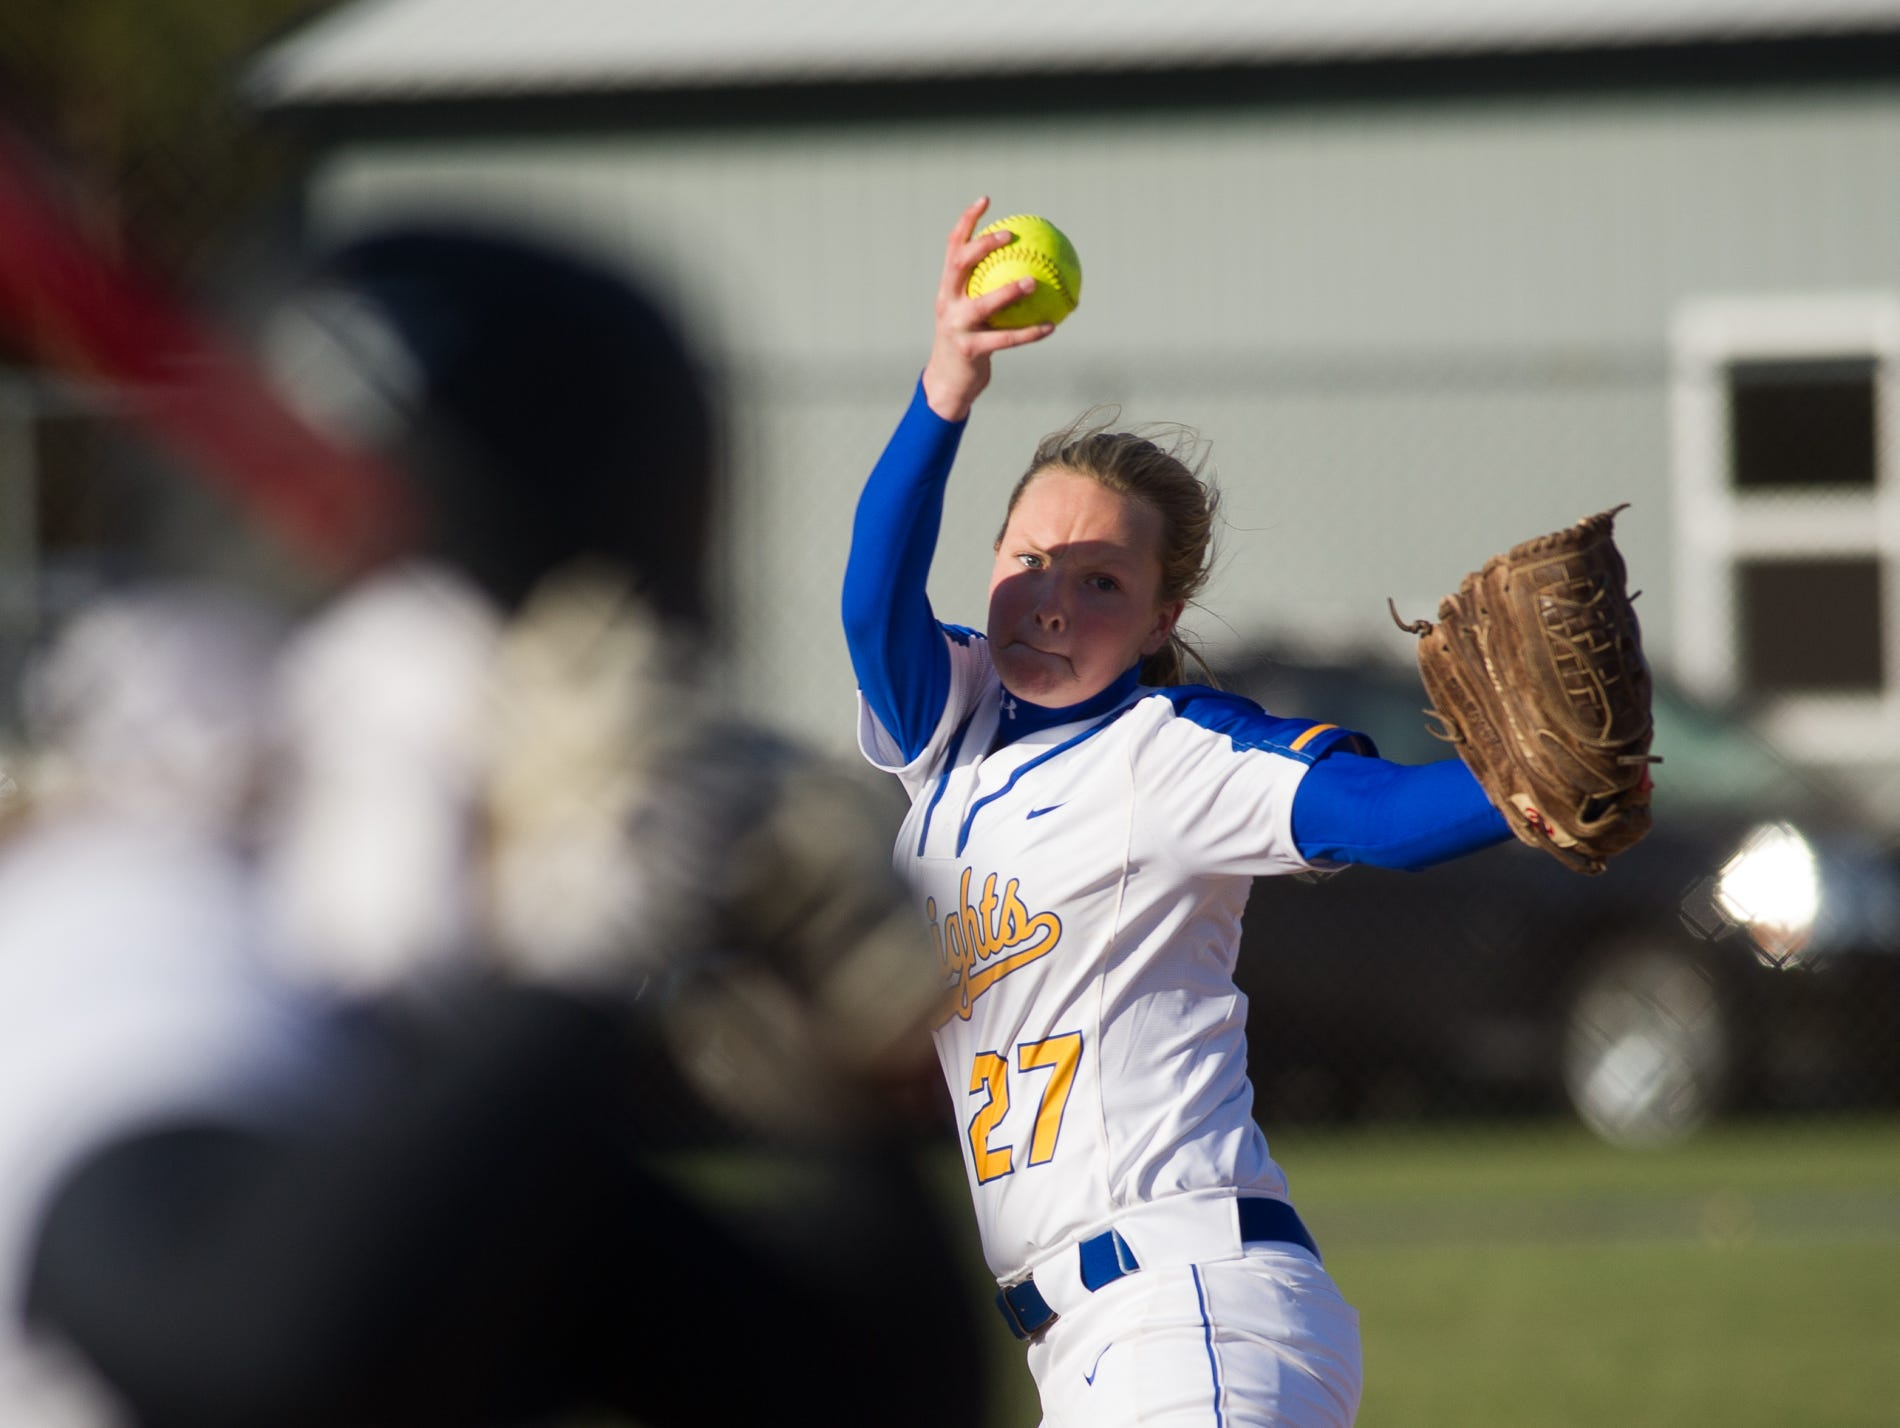 Sussex Central's pitcher Hayley McCabe (27) pitches in their game against Sussex Tech.